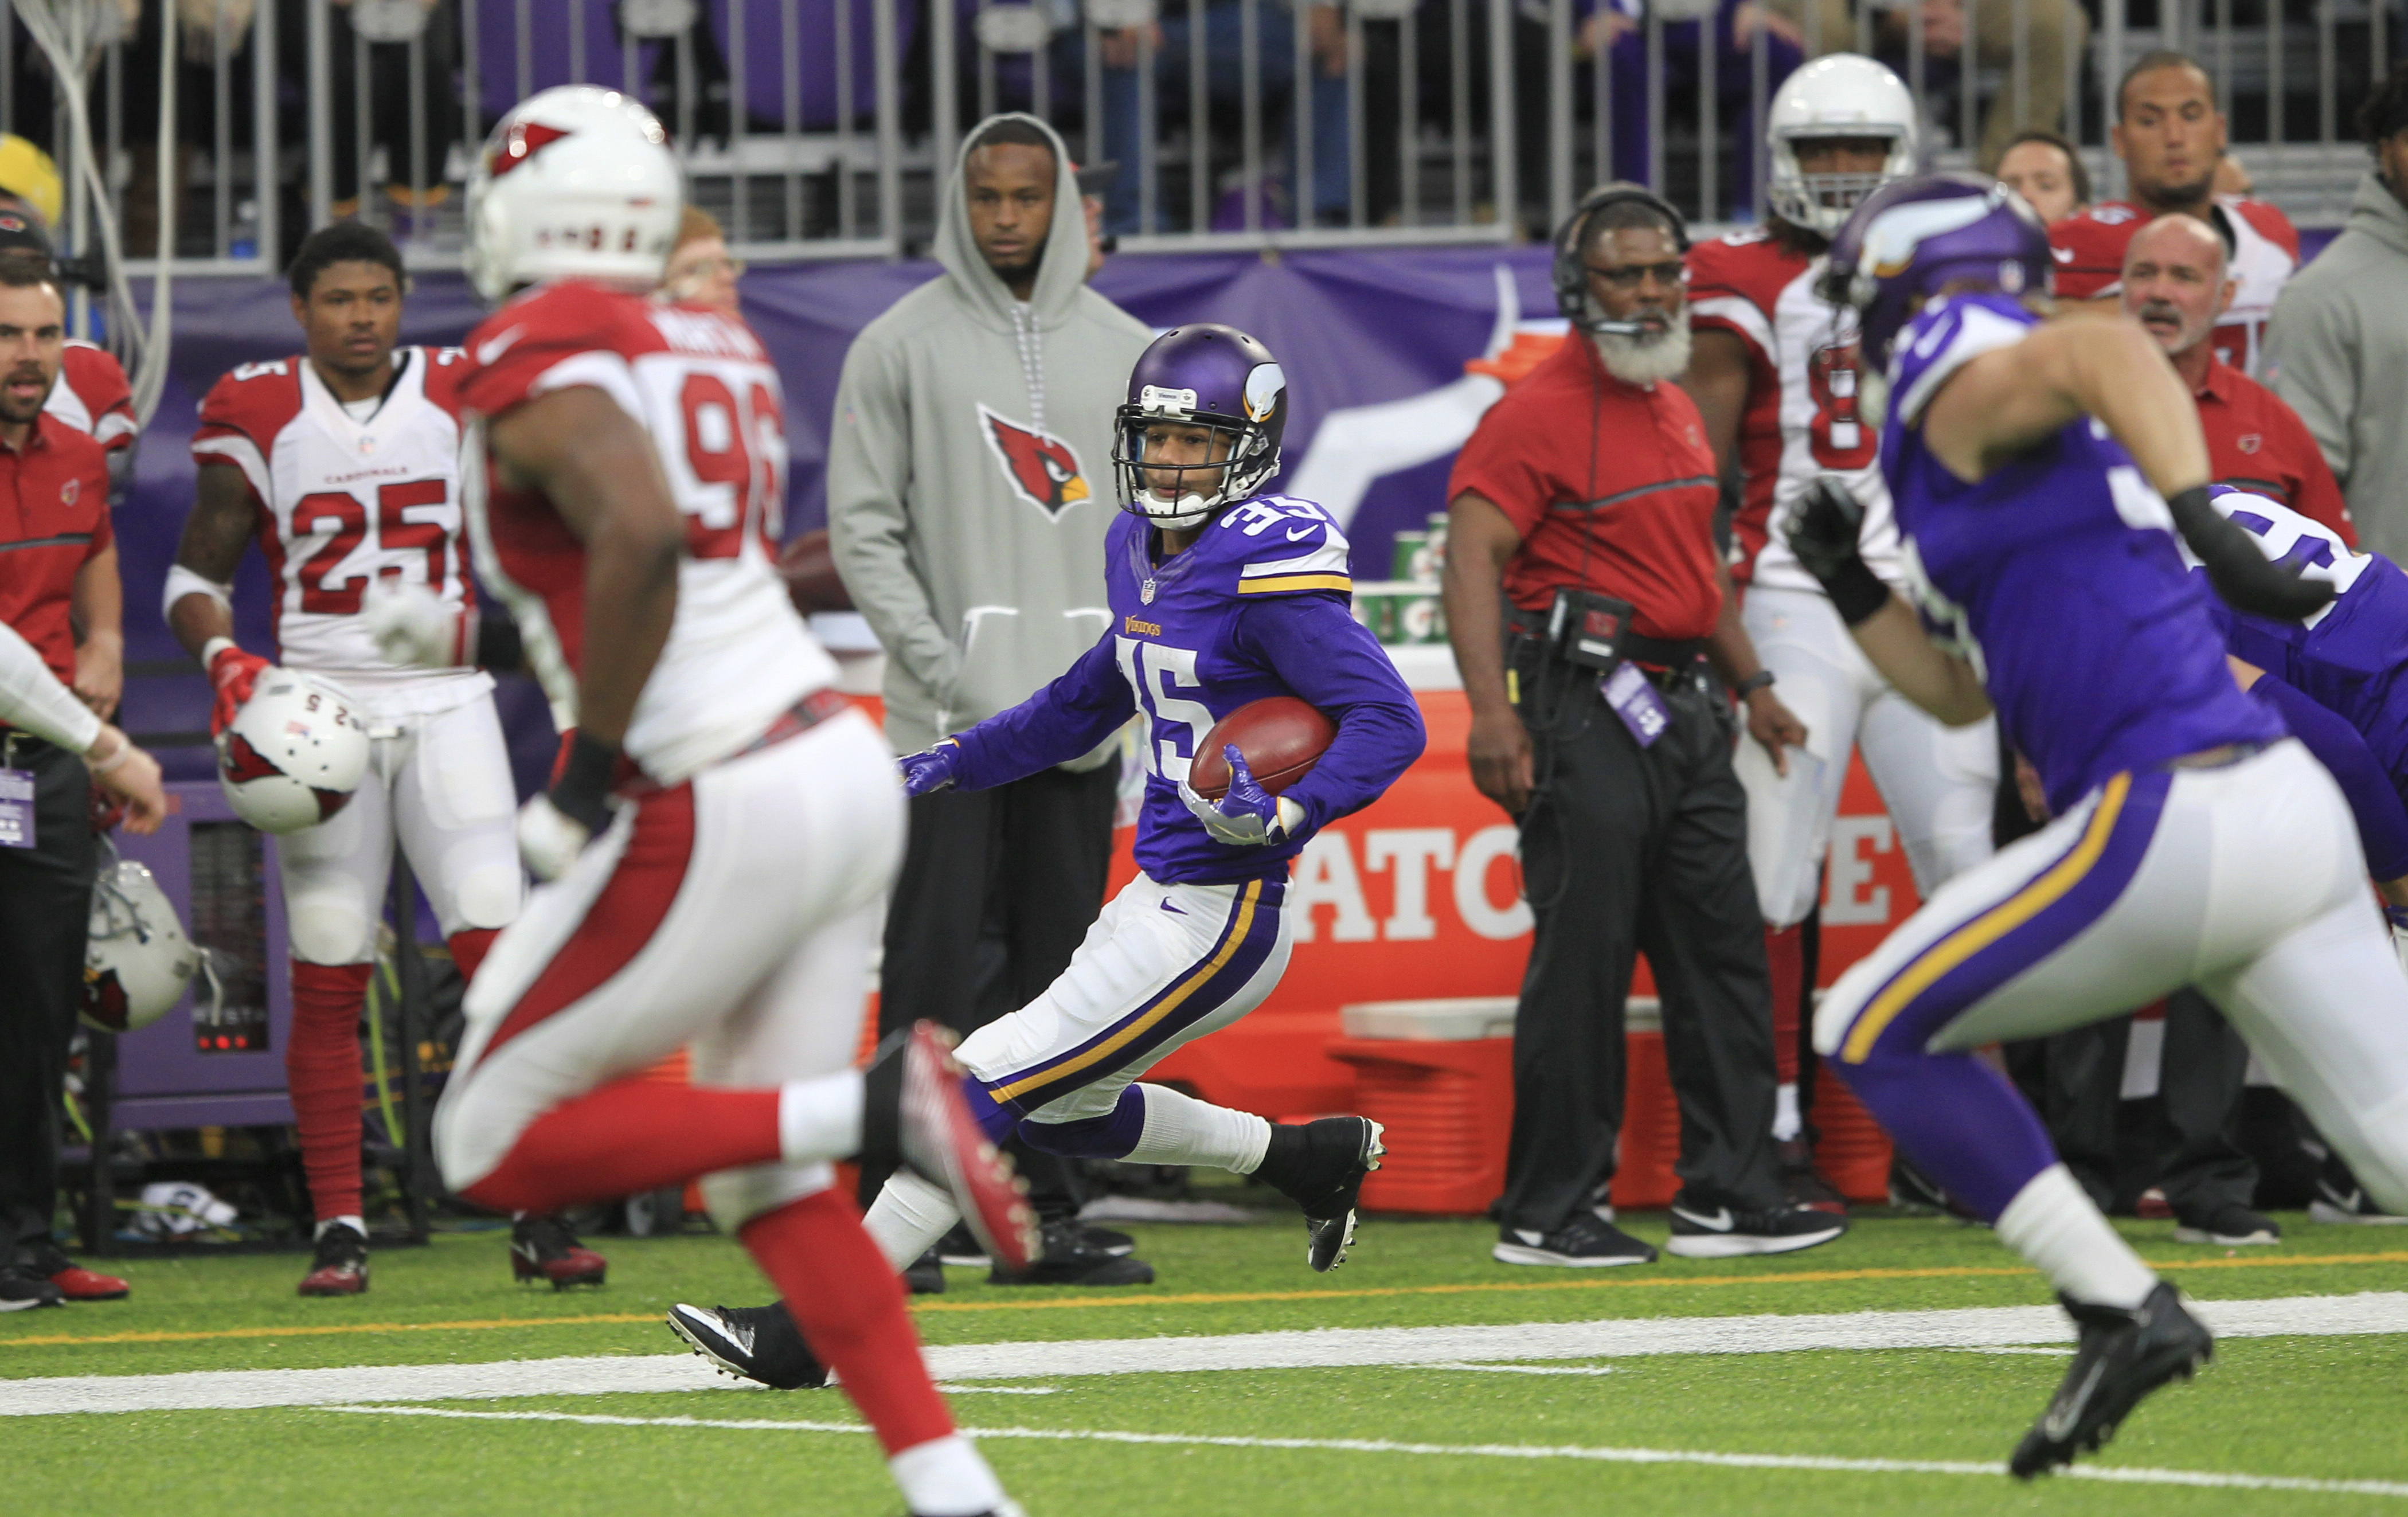 Minnesota Vikings cornerback Marcus Sherels (35) returns a punt during the first half of an NFL football game against the Arizona Cardinals Sunday, Nov. 20, 2016, in Minneapolis. (AP Photo/Andy Clayton-King)